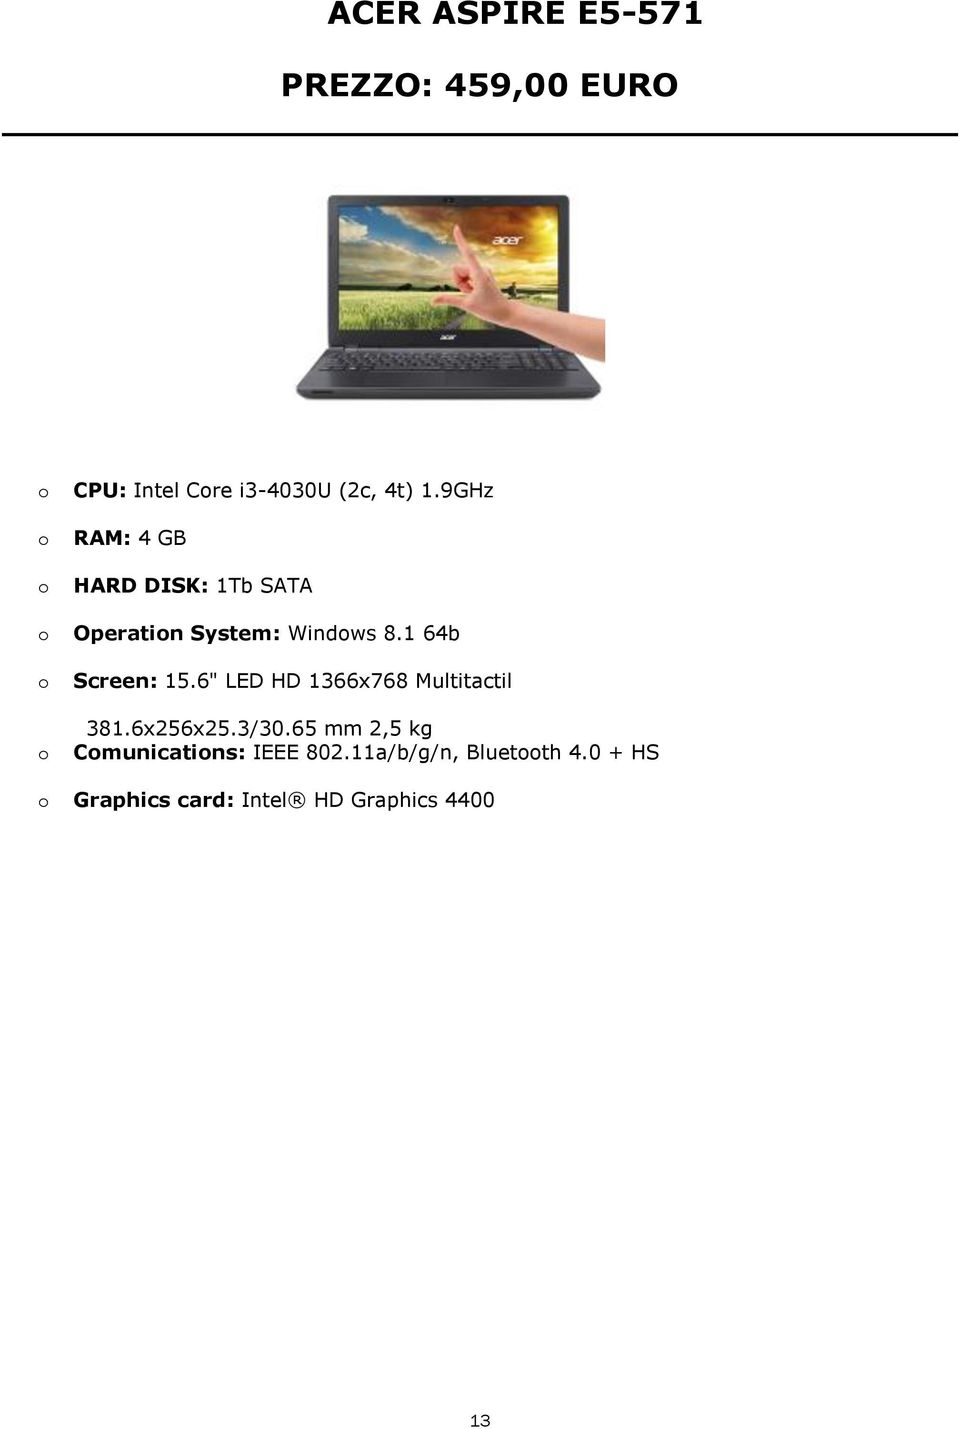 "1 64b Screen: 15.6"" LED HD 1366x768 Multitactil 381.6x256x25.3/30."